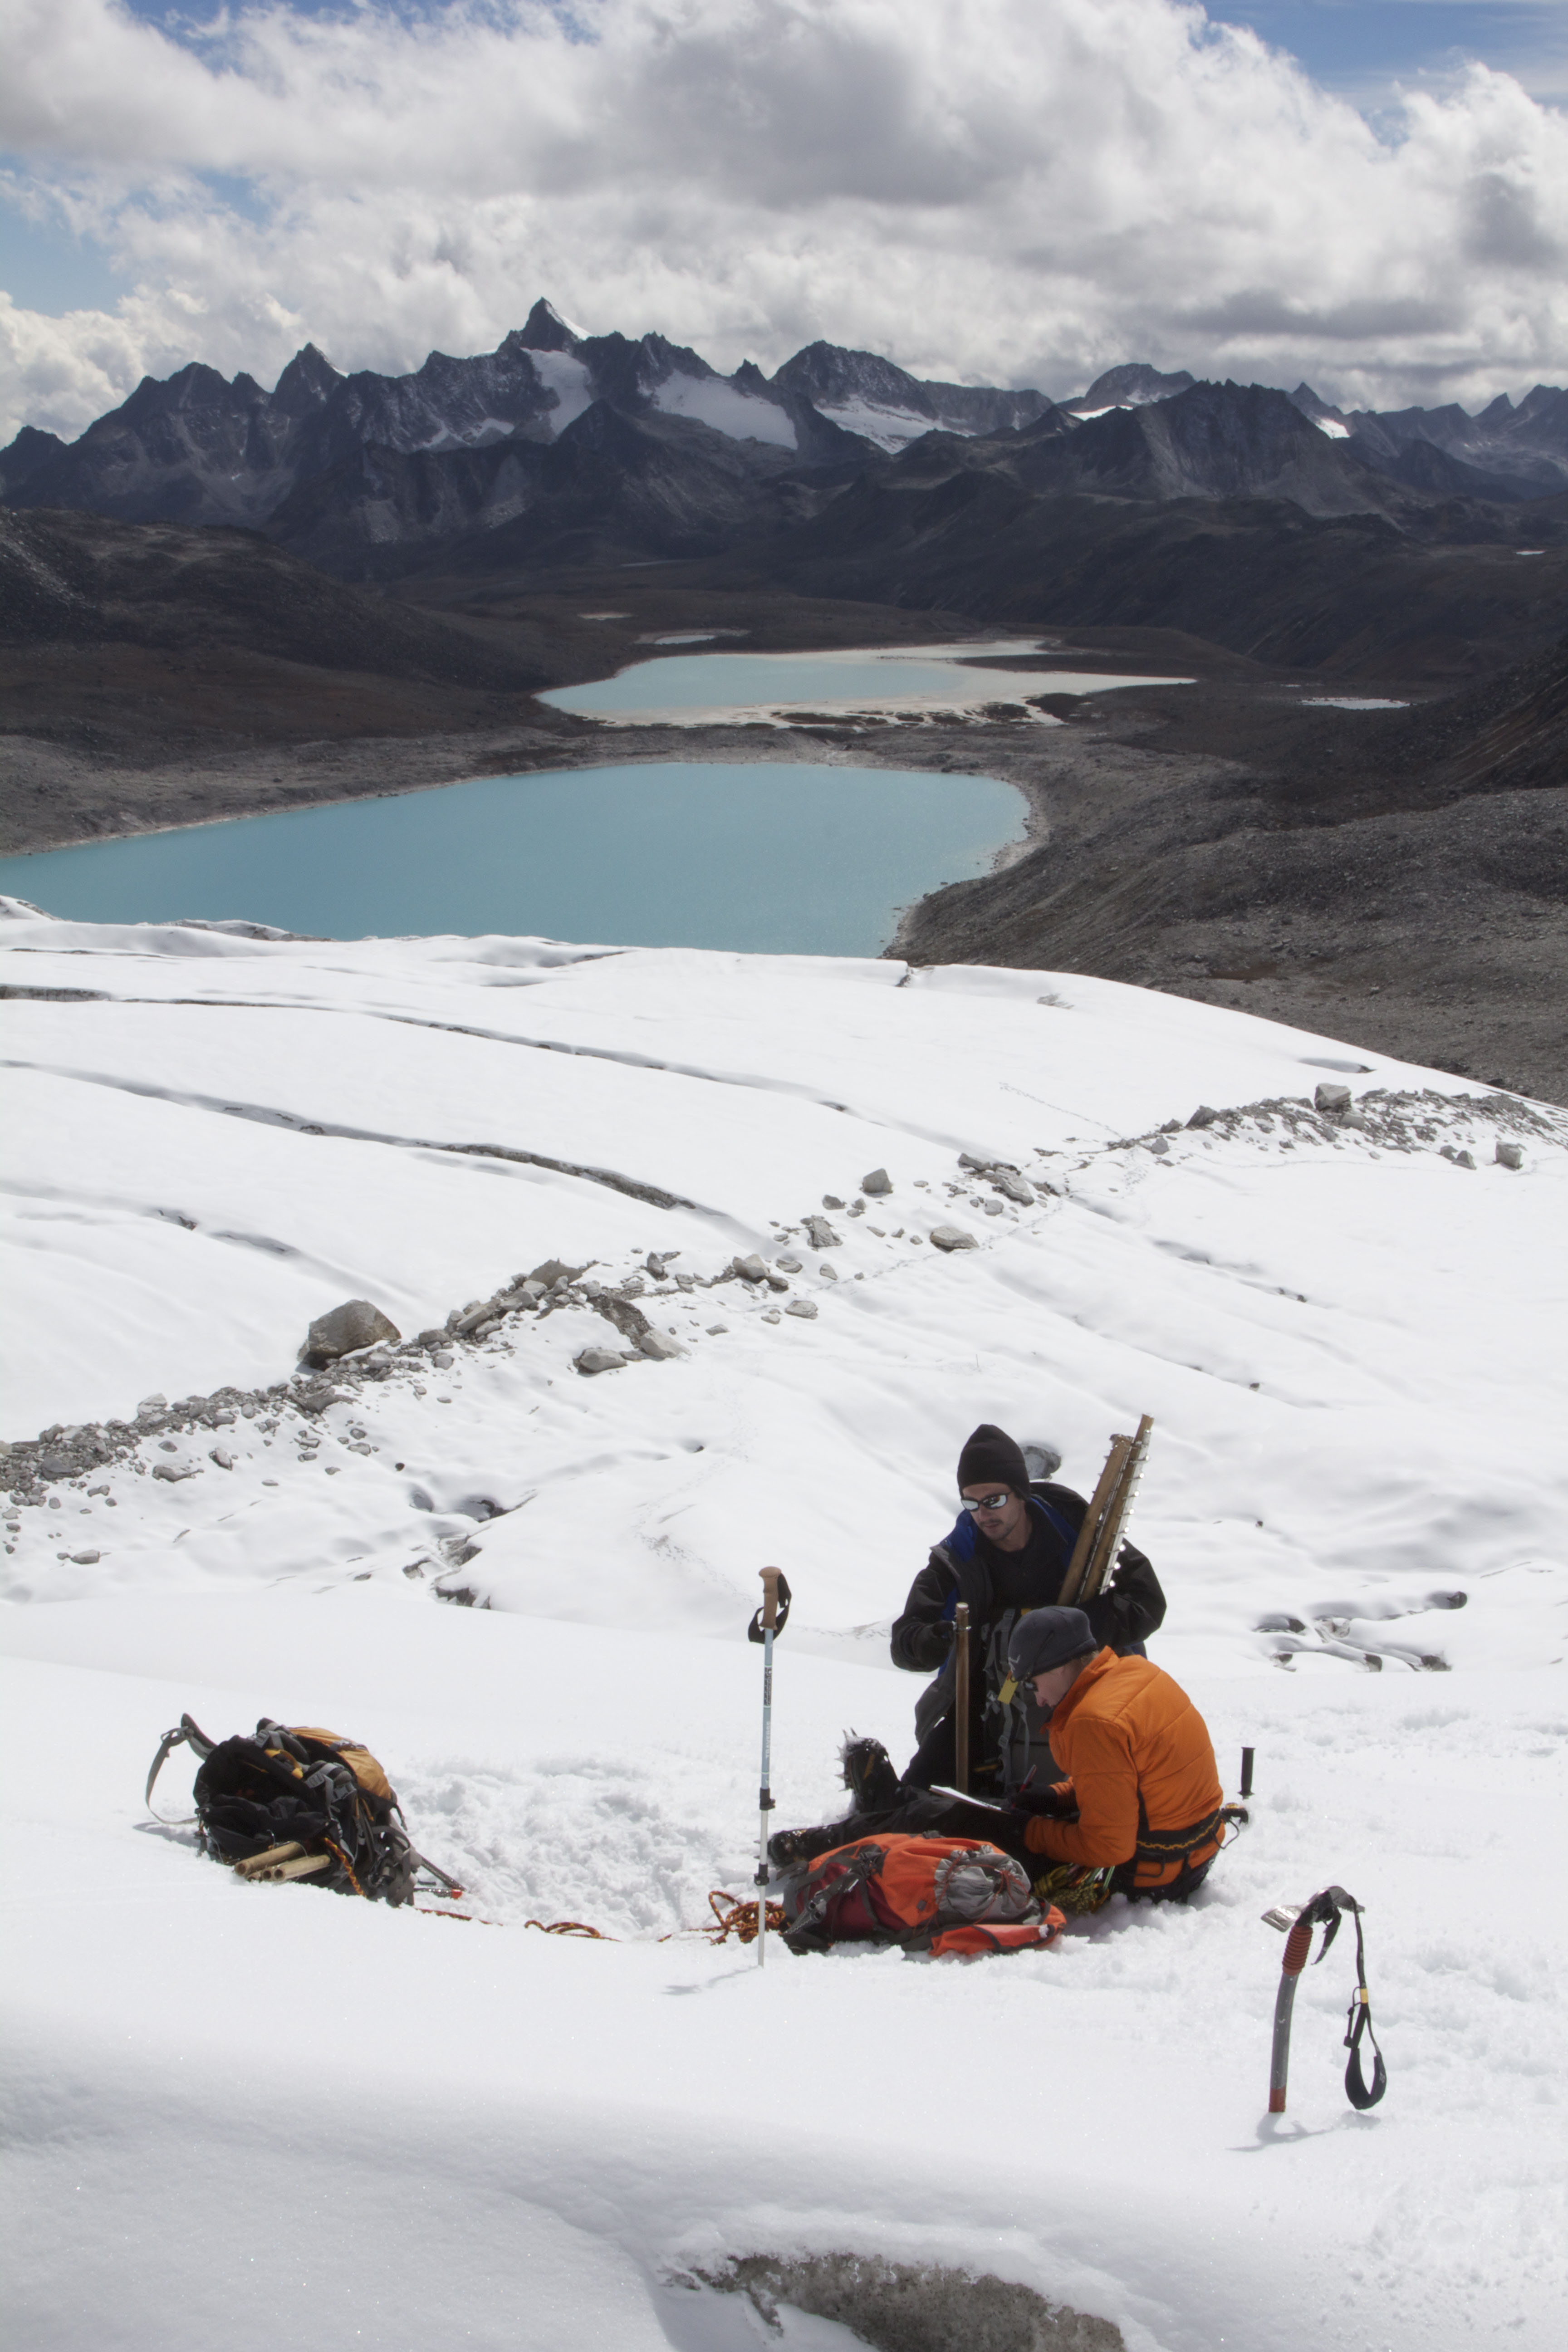 Deserts, glaciers and climate